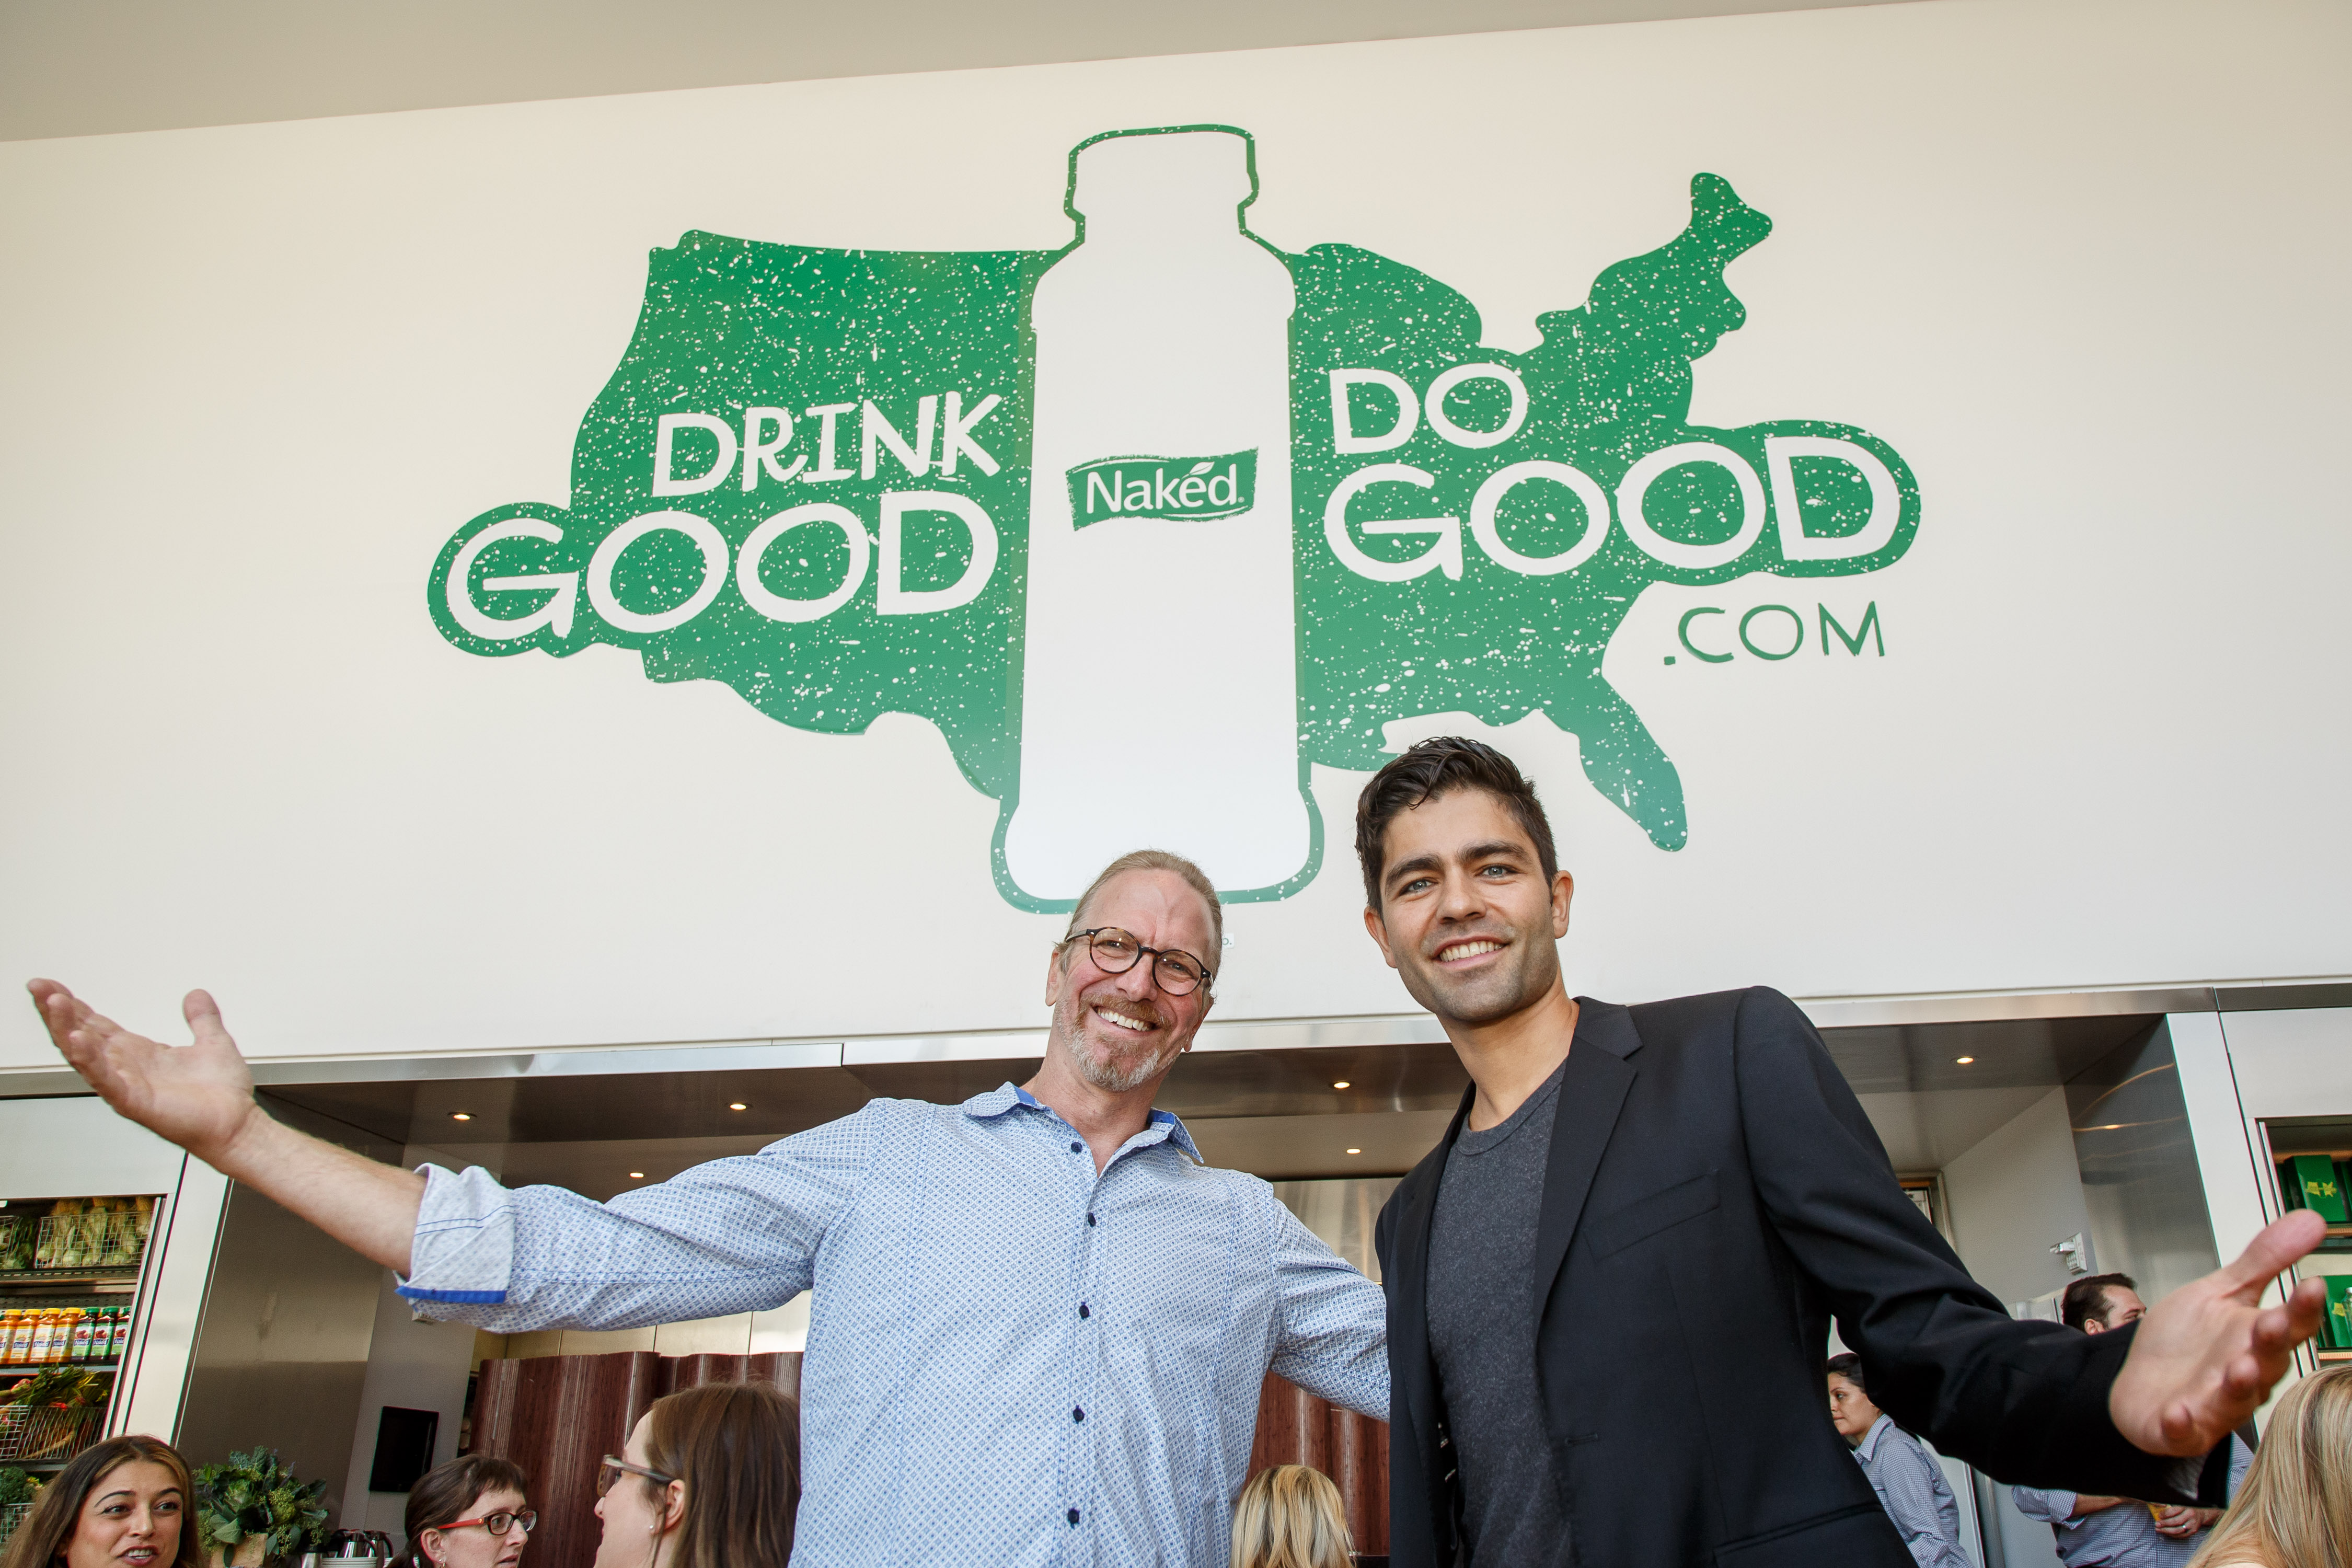 Actor Adrian Grenier attends Naked Juice 'Drink Good. Do Good' campaign lunch at Riverpark Restaurant on August 18, 2015 in New York City. INSIDER IMAGES/Gary He